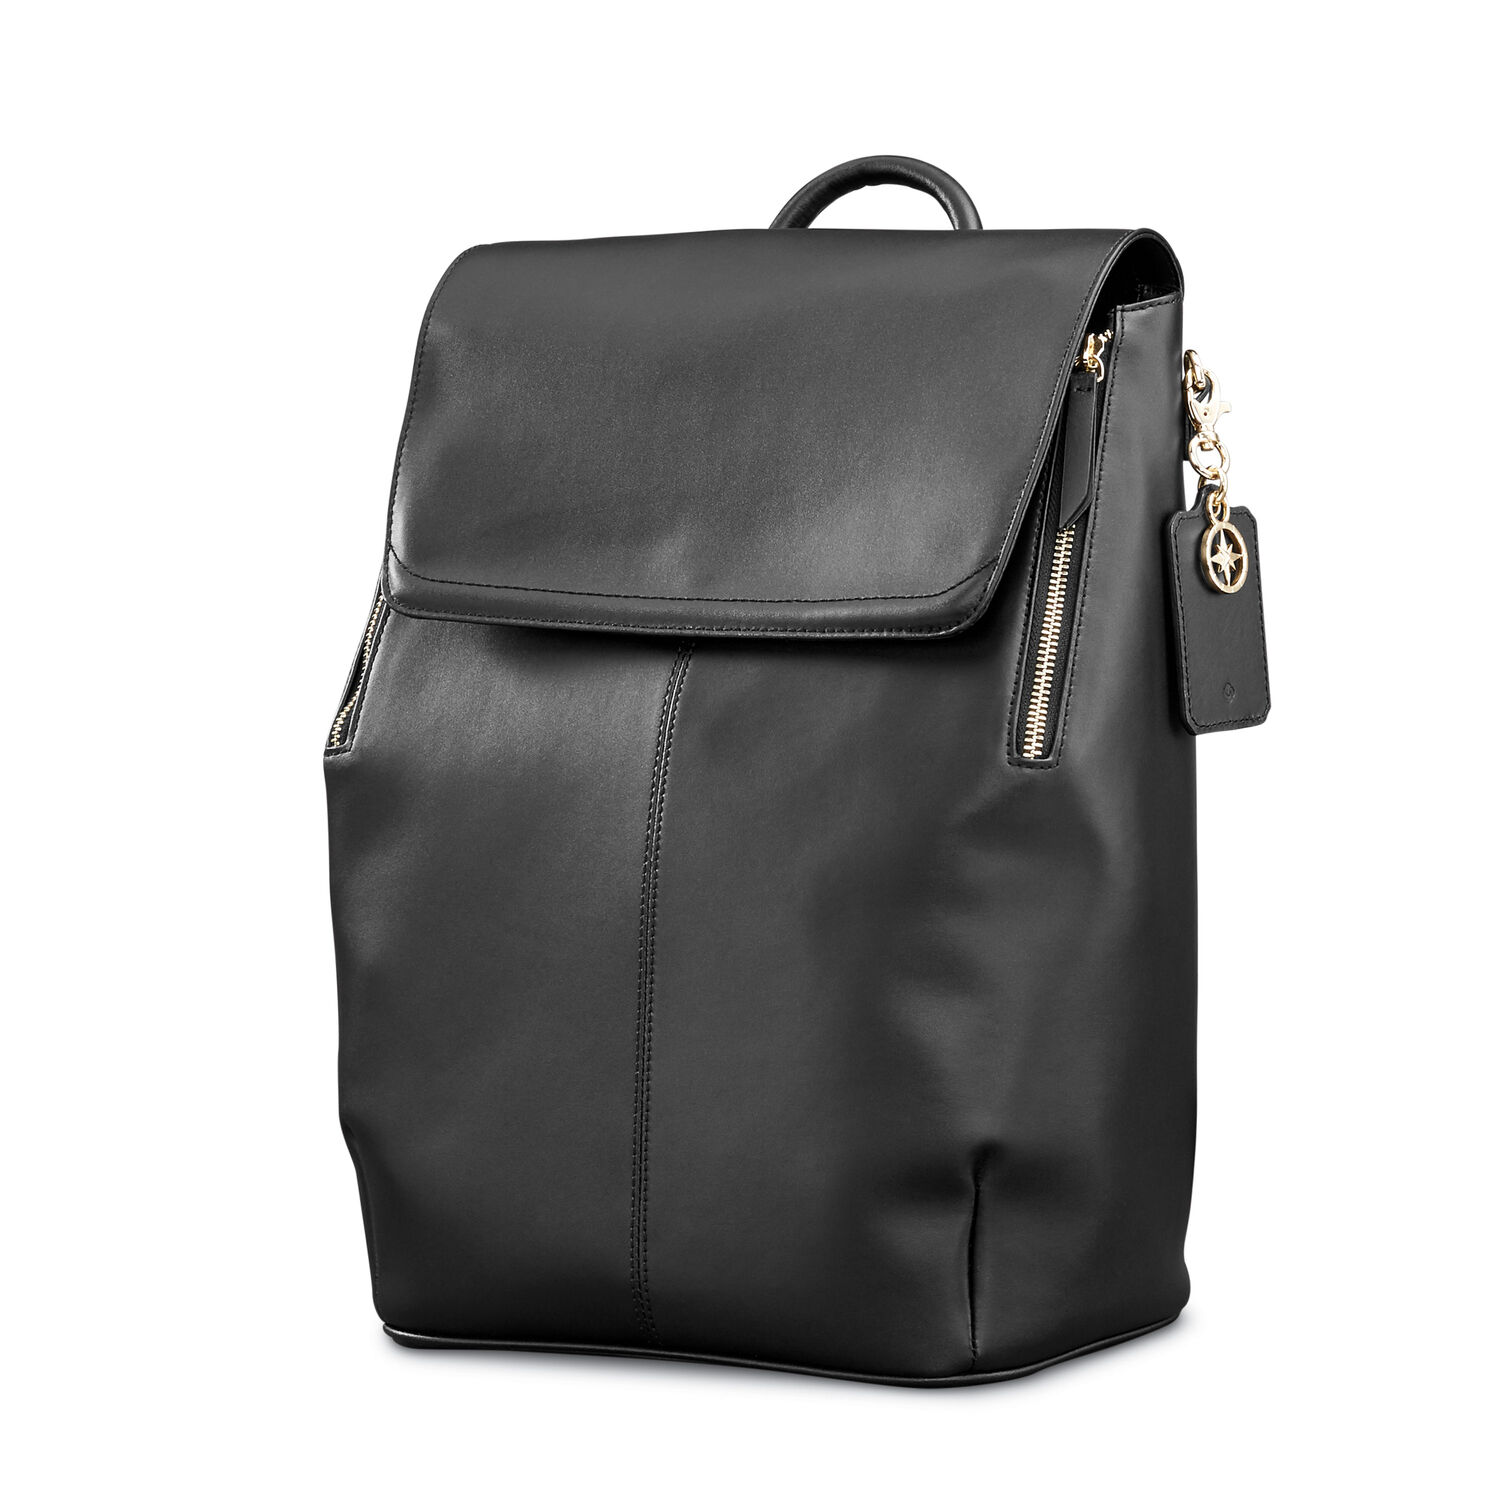 Samsonite Ladies Leather Hamptons Backpack in the color Black. 326041017a